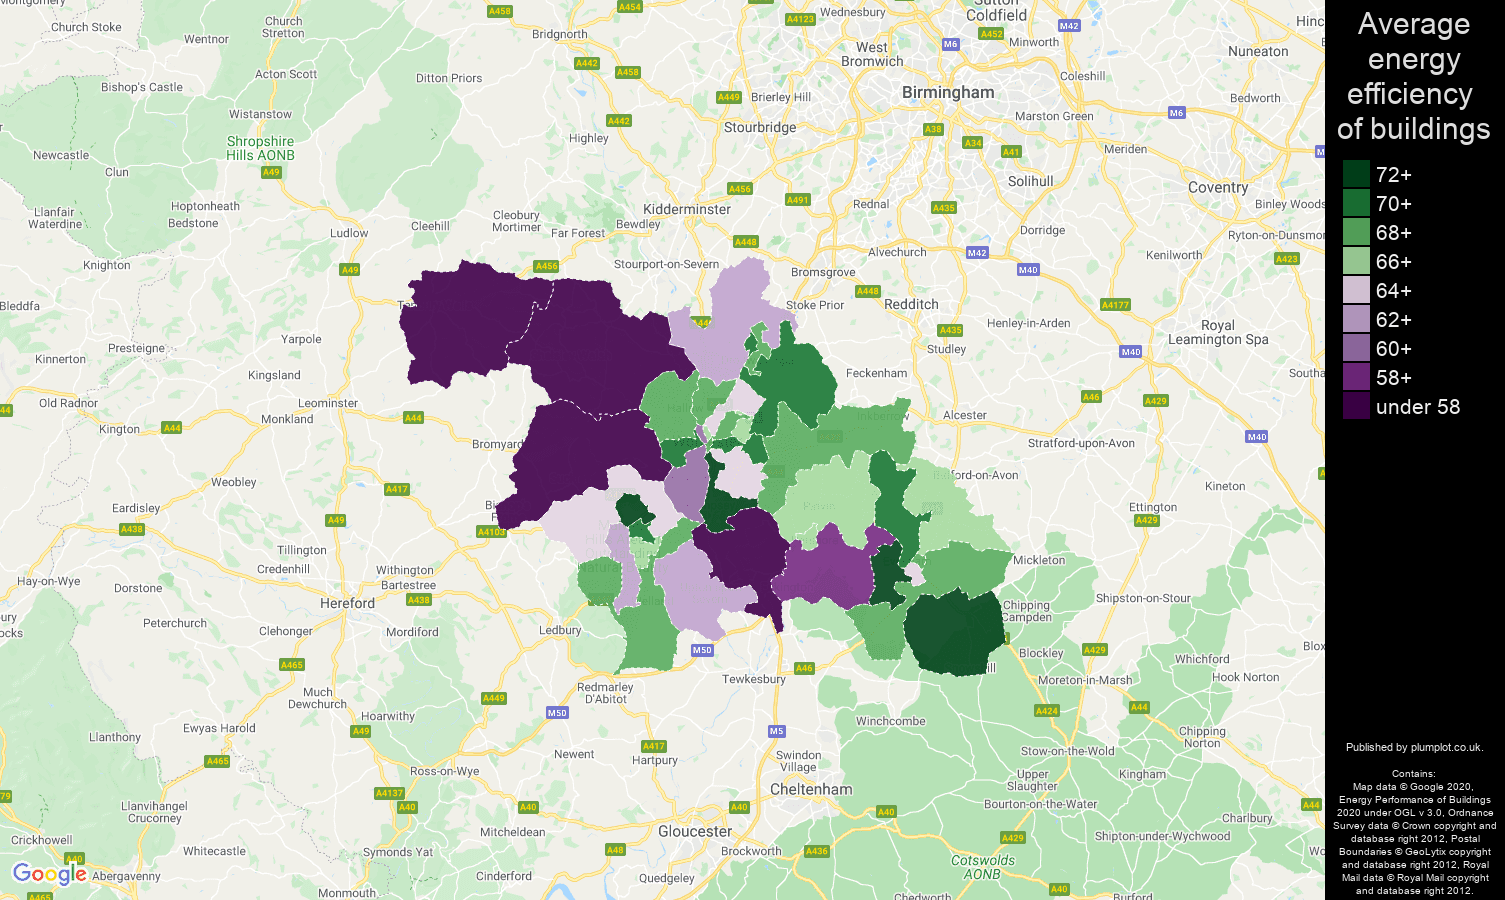 Worcester map of energy efficiency of flats